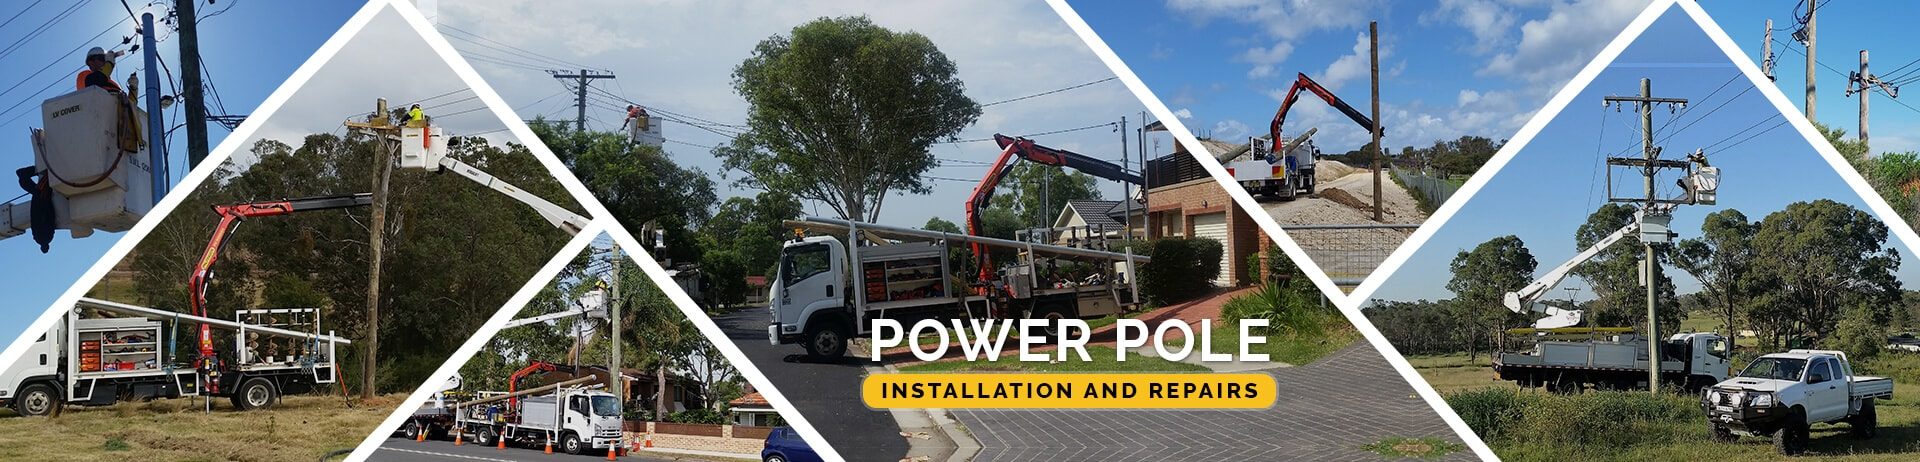 Power Pole Installation And Repairs